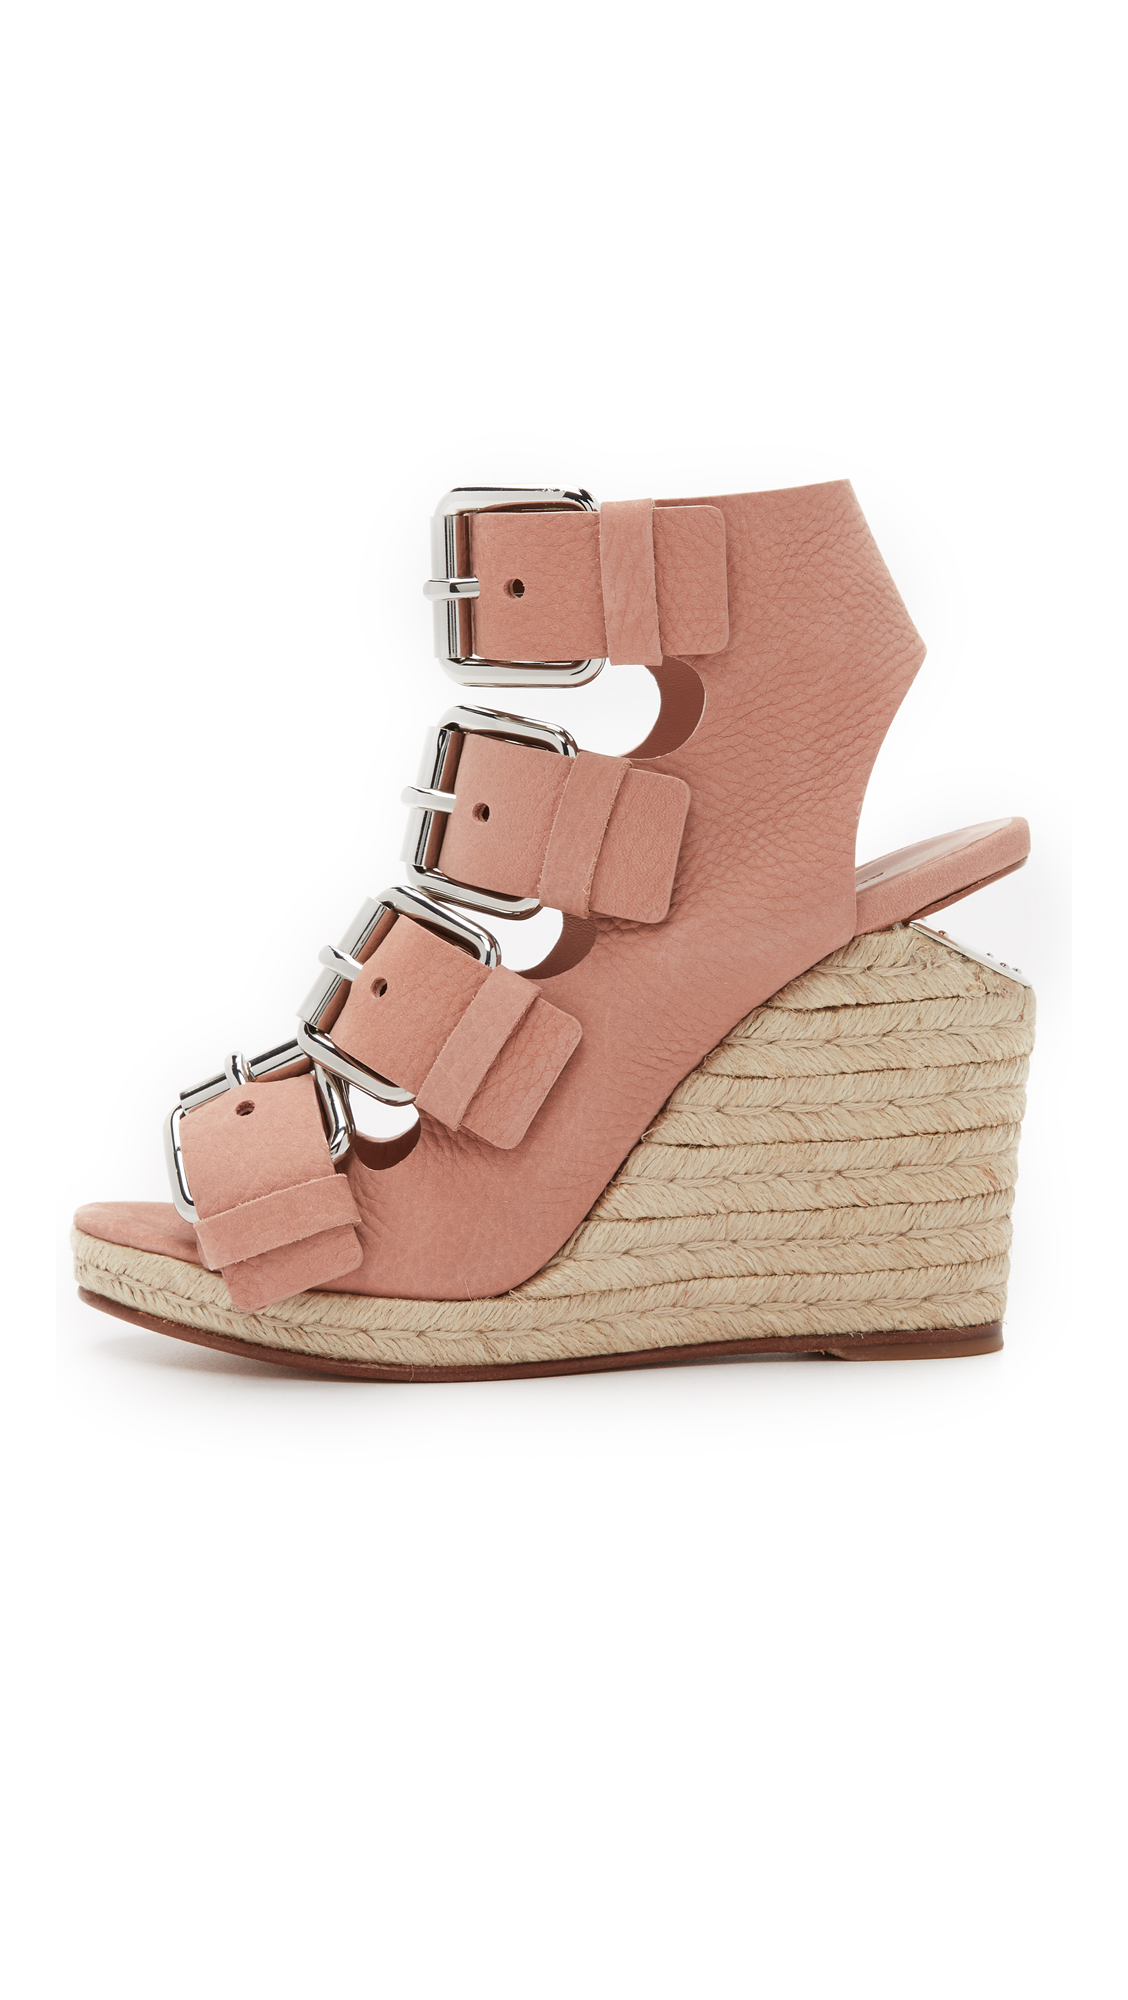 Alexander Wang Jo Buckle Wedge Sandals - Blush